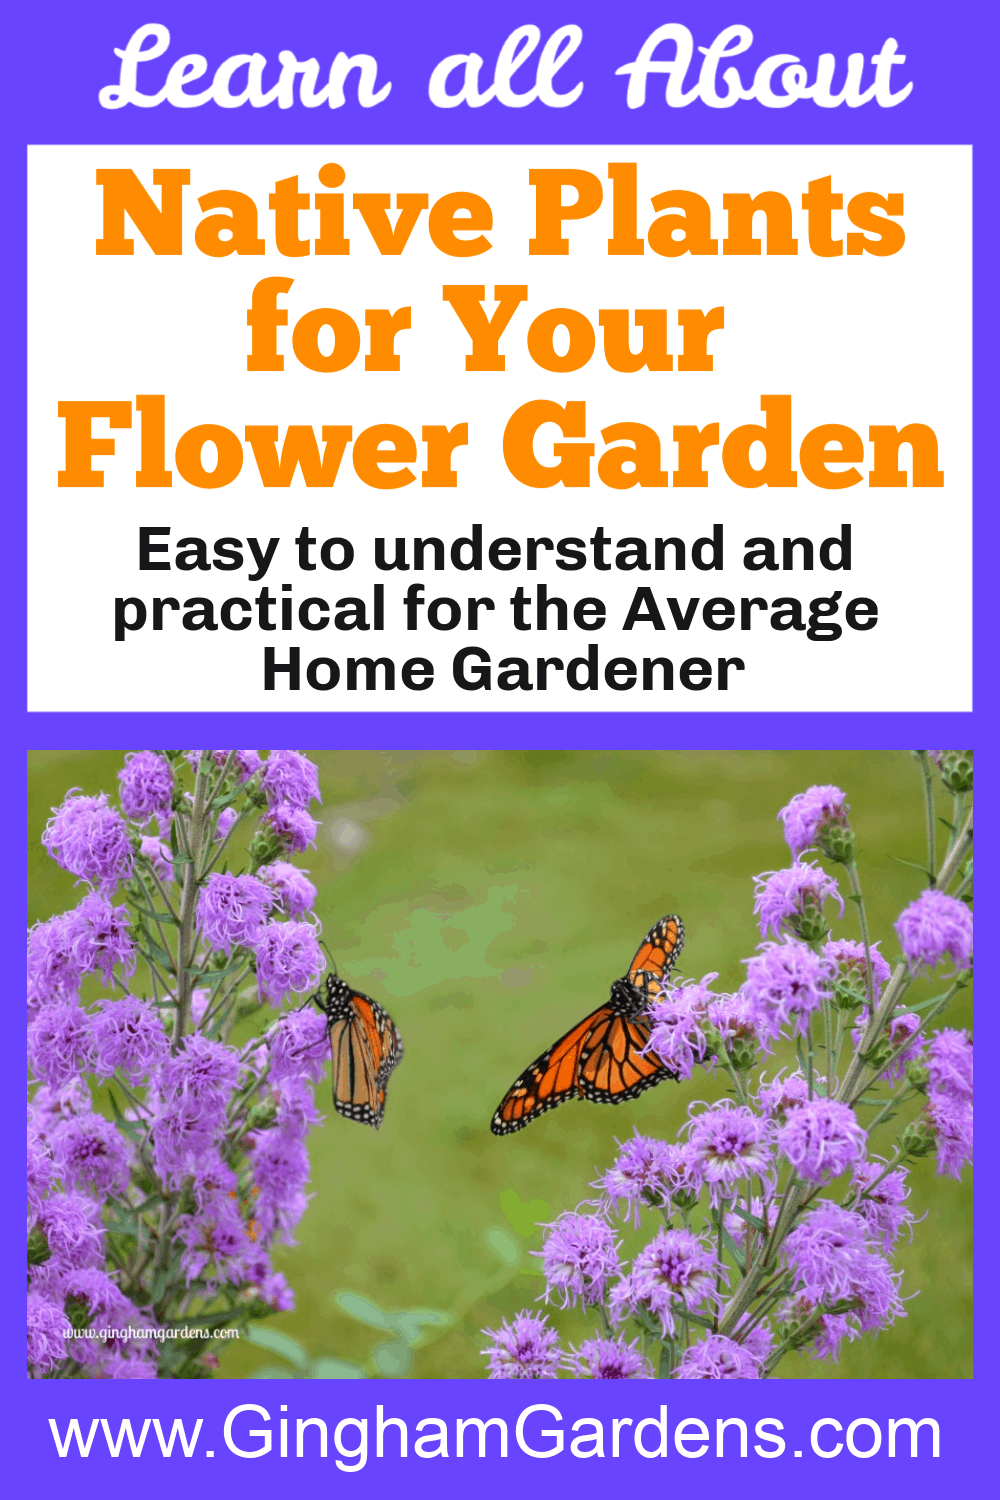 Image of butterfly on flowers with text overlay - Native Plants for Your Flower Garden